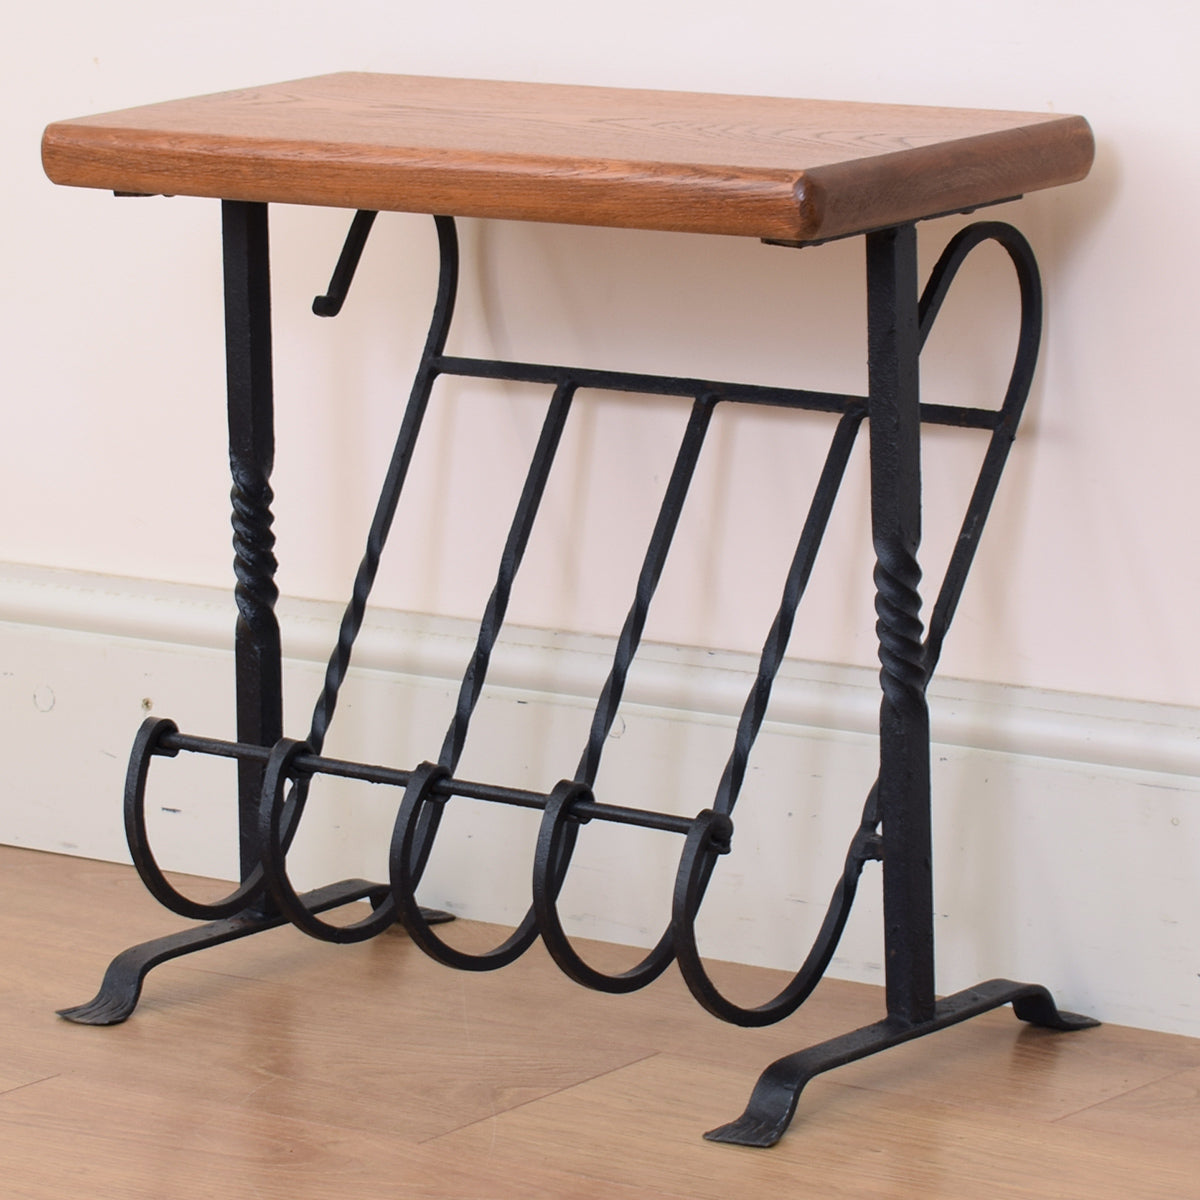 Oak and Iron Magazine Rack